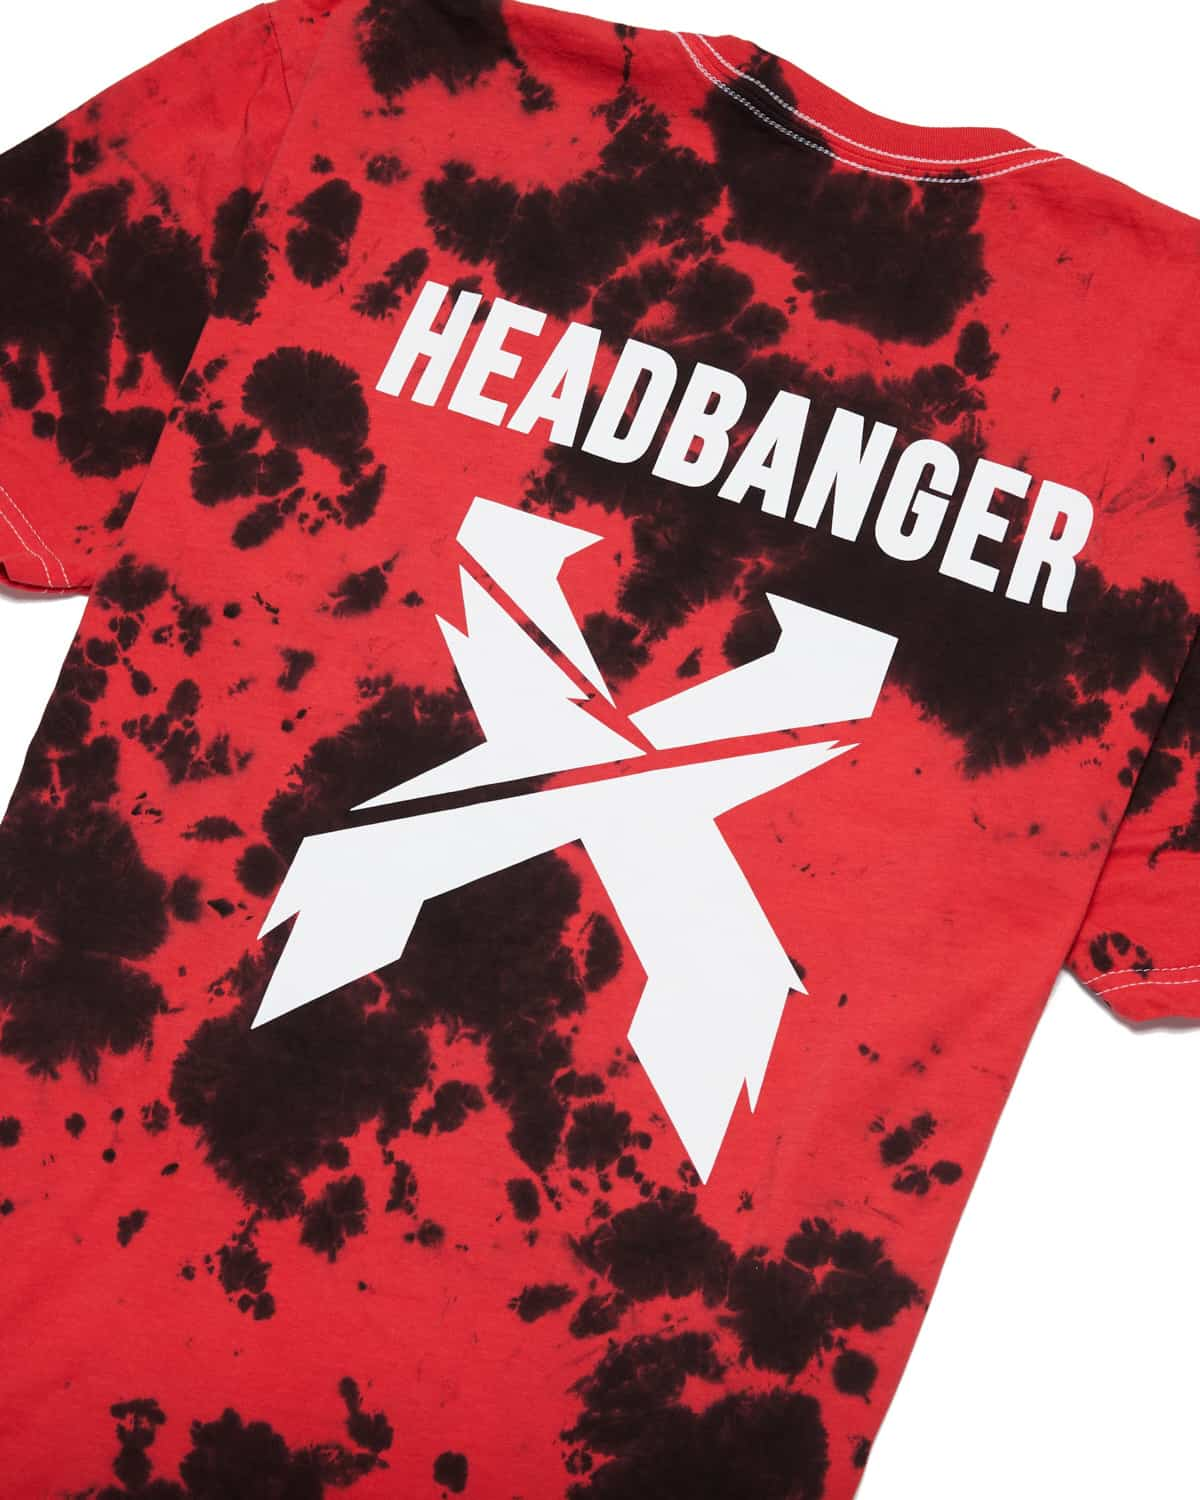 Excision 'Headbanger' Tie-Dye Unisex T-Shirt - Red